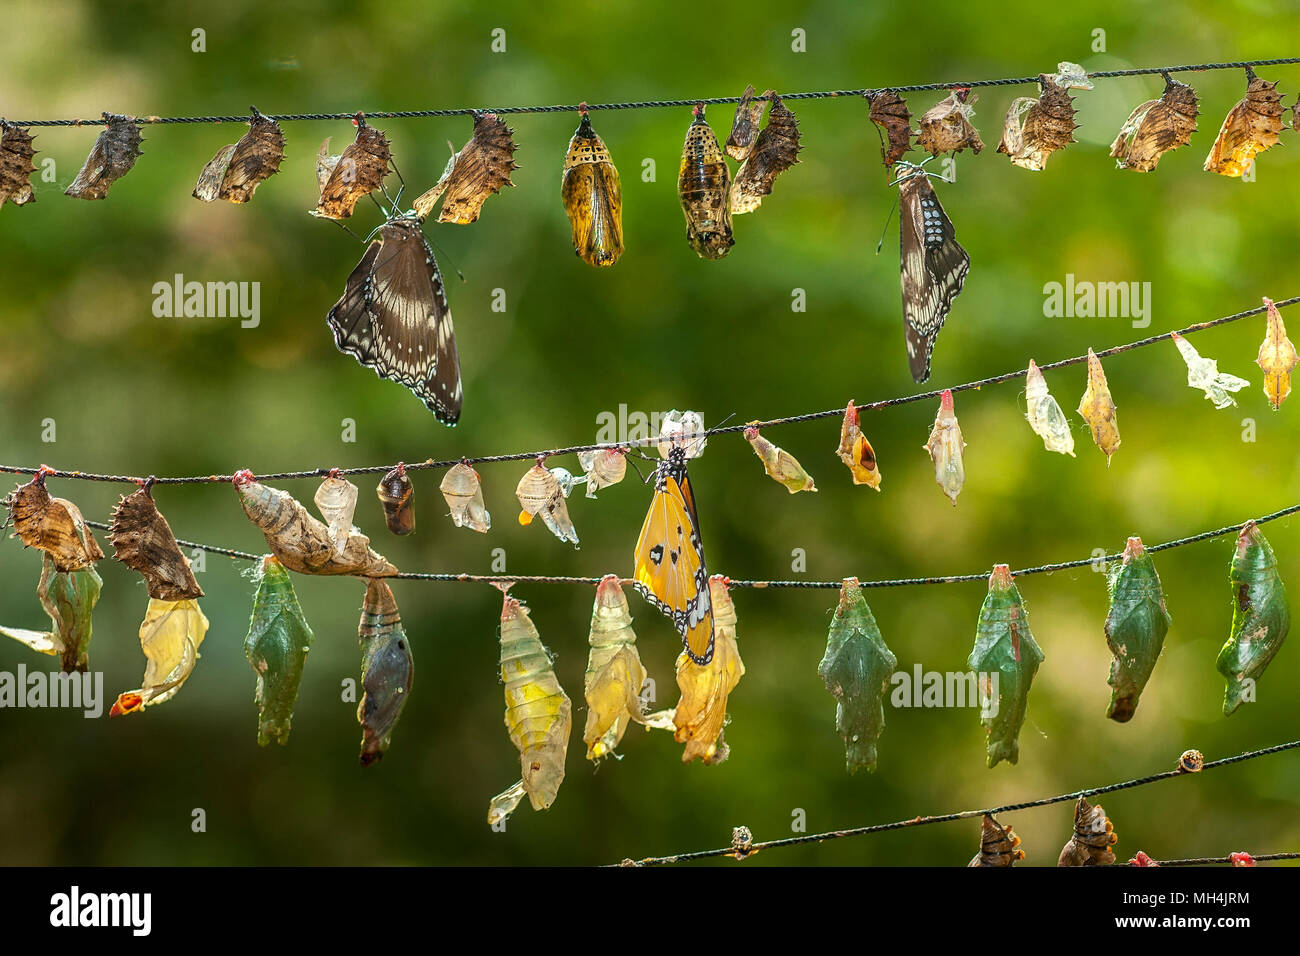 A variety of butterfly chrysalises, some with parasitic eggs attached, hang on strings like Chinese lanterns at the Butterfly Eco Garden and Tribal Vi - Stock Image